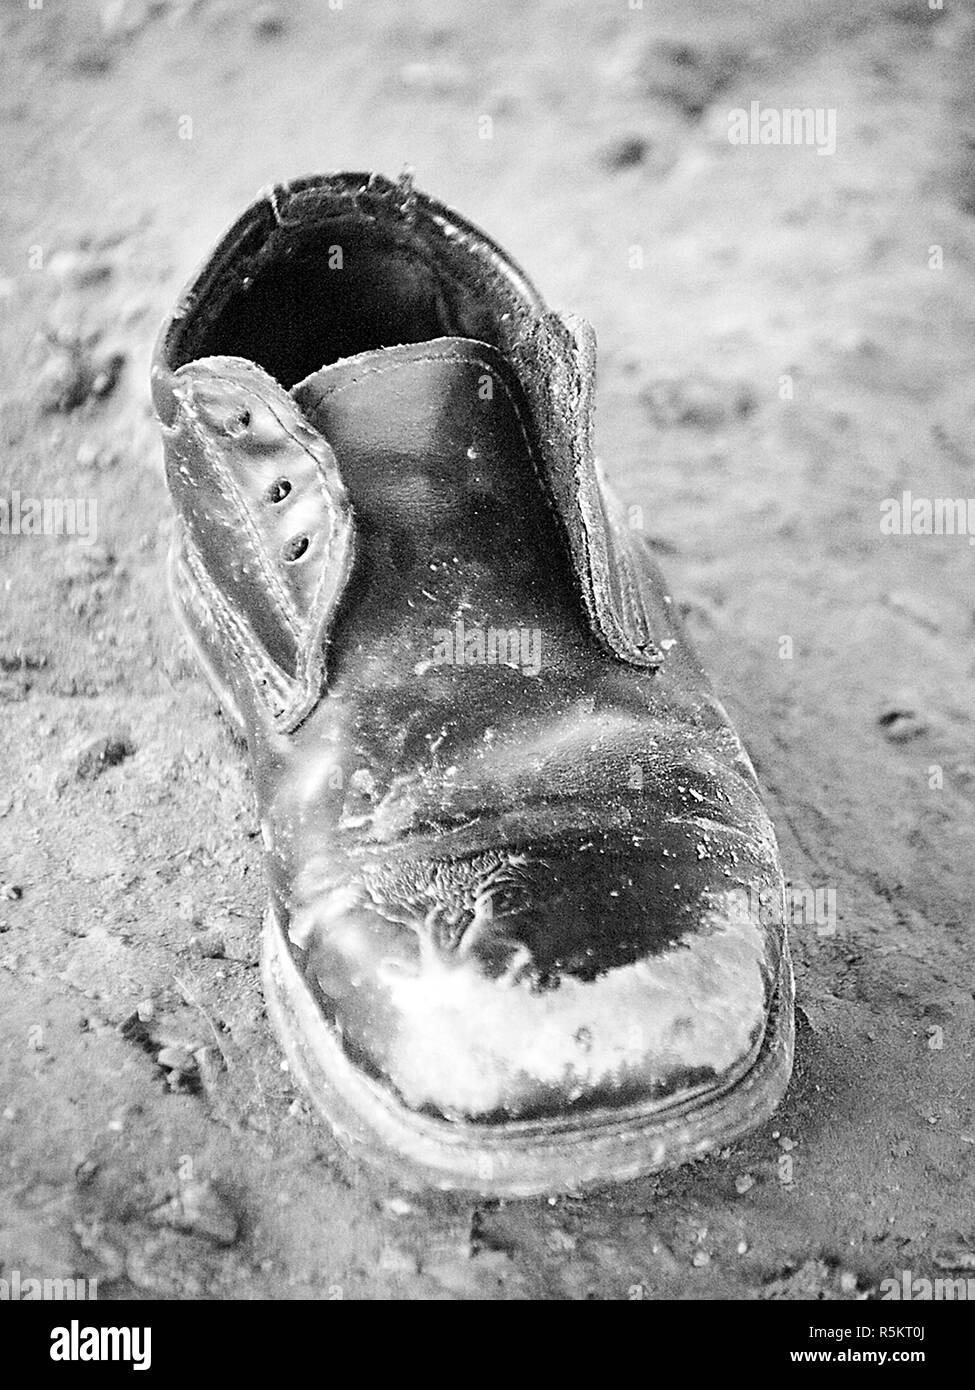 Old Shoes, Memories from a time long ago - Stock Image